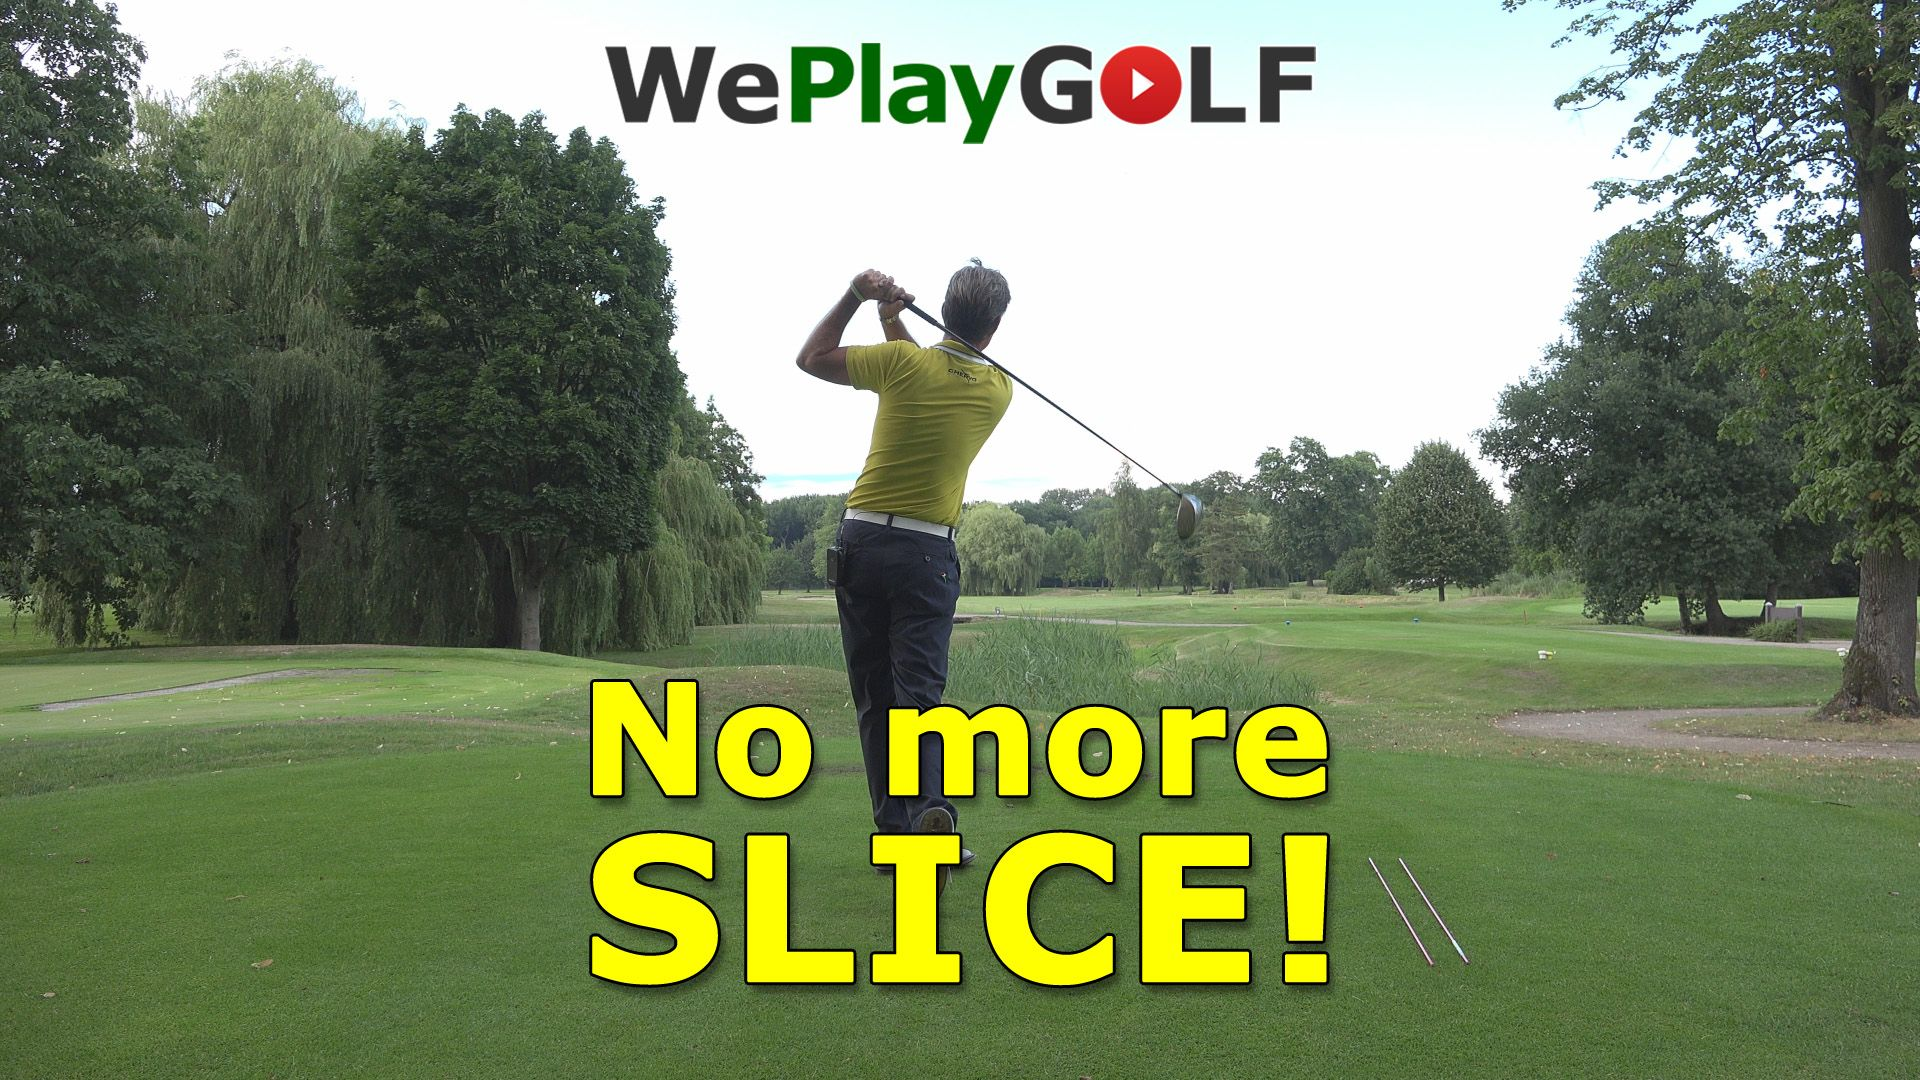 Videotip: Weg met die slice op jouw drives! - Video - Blog